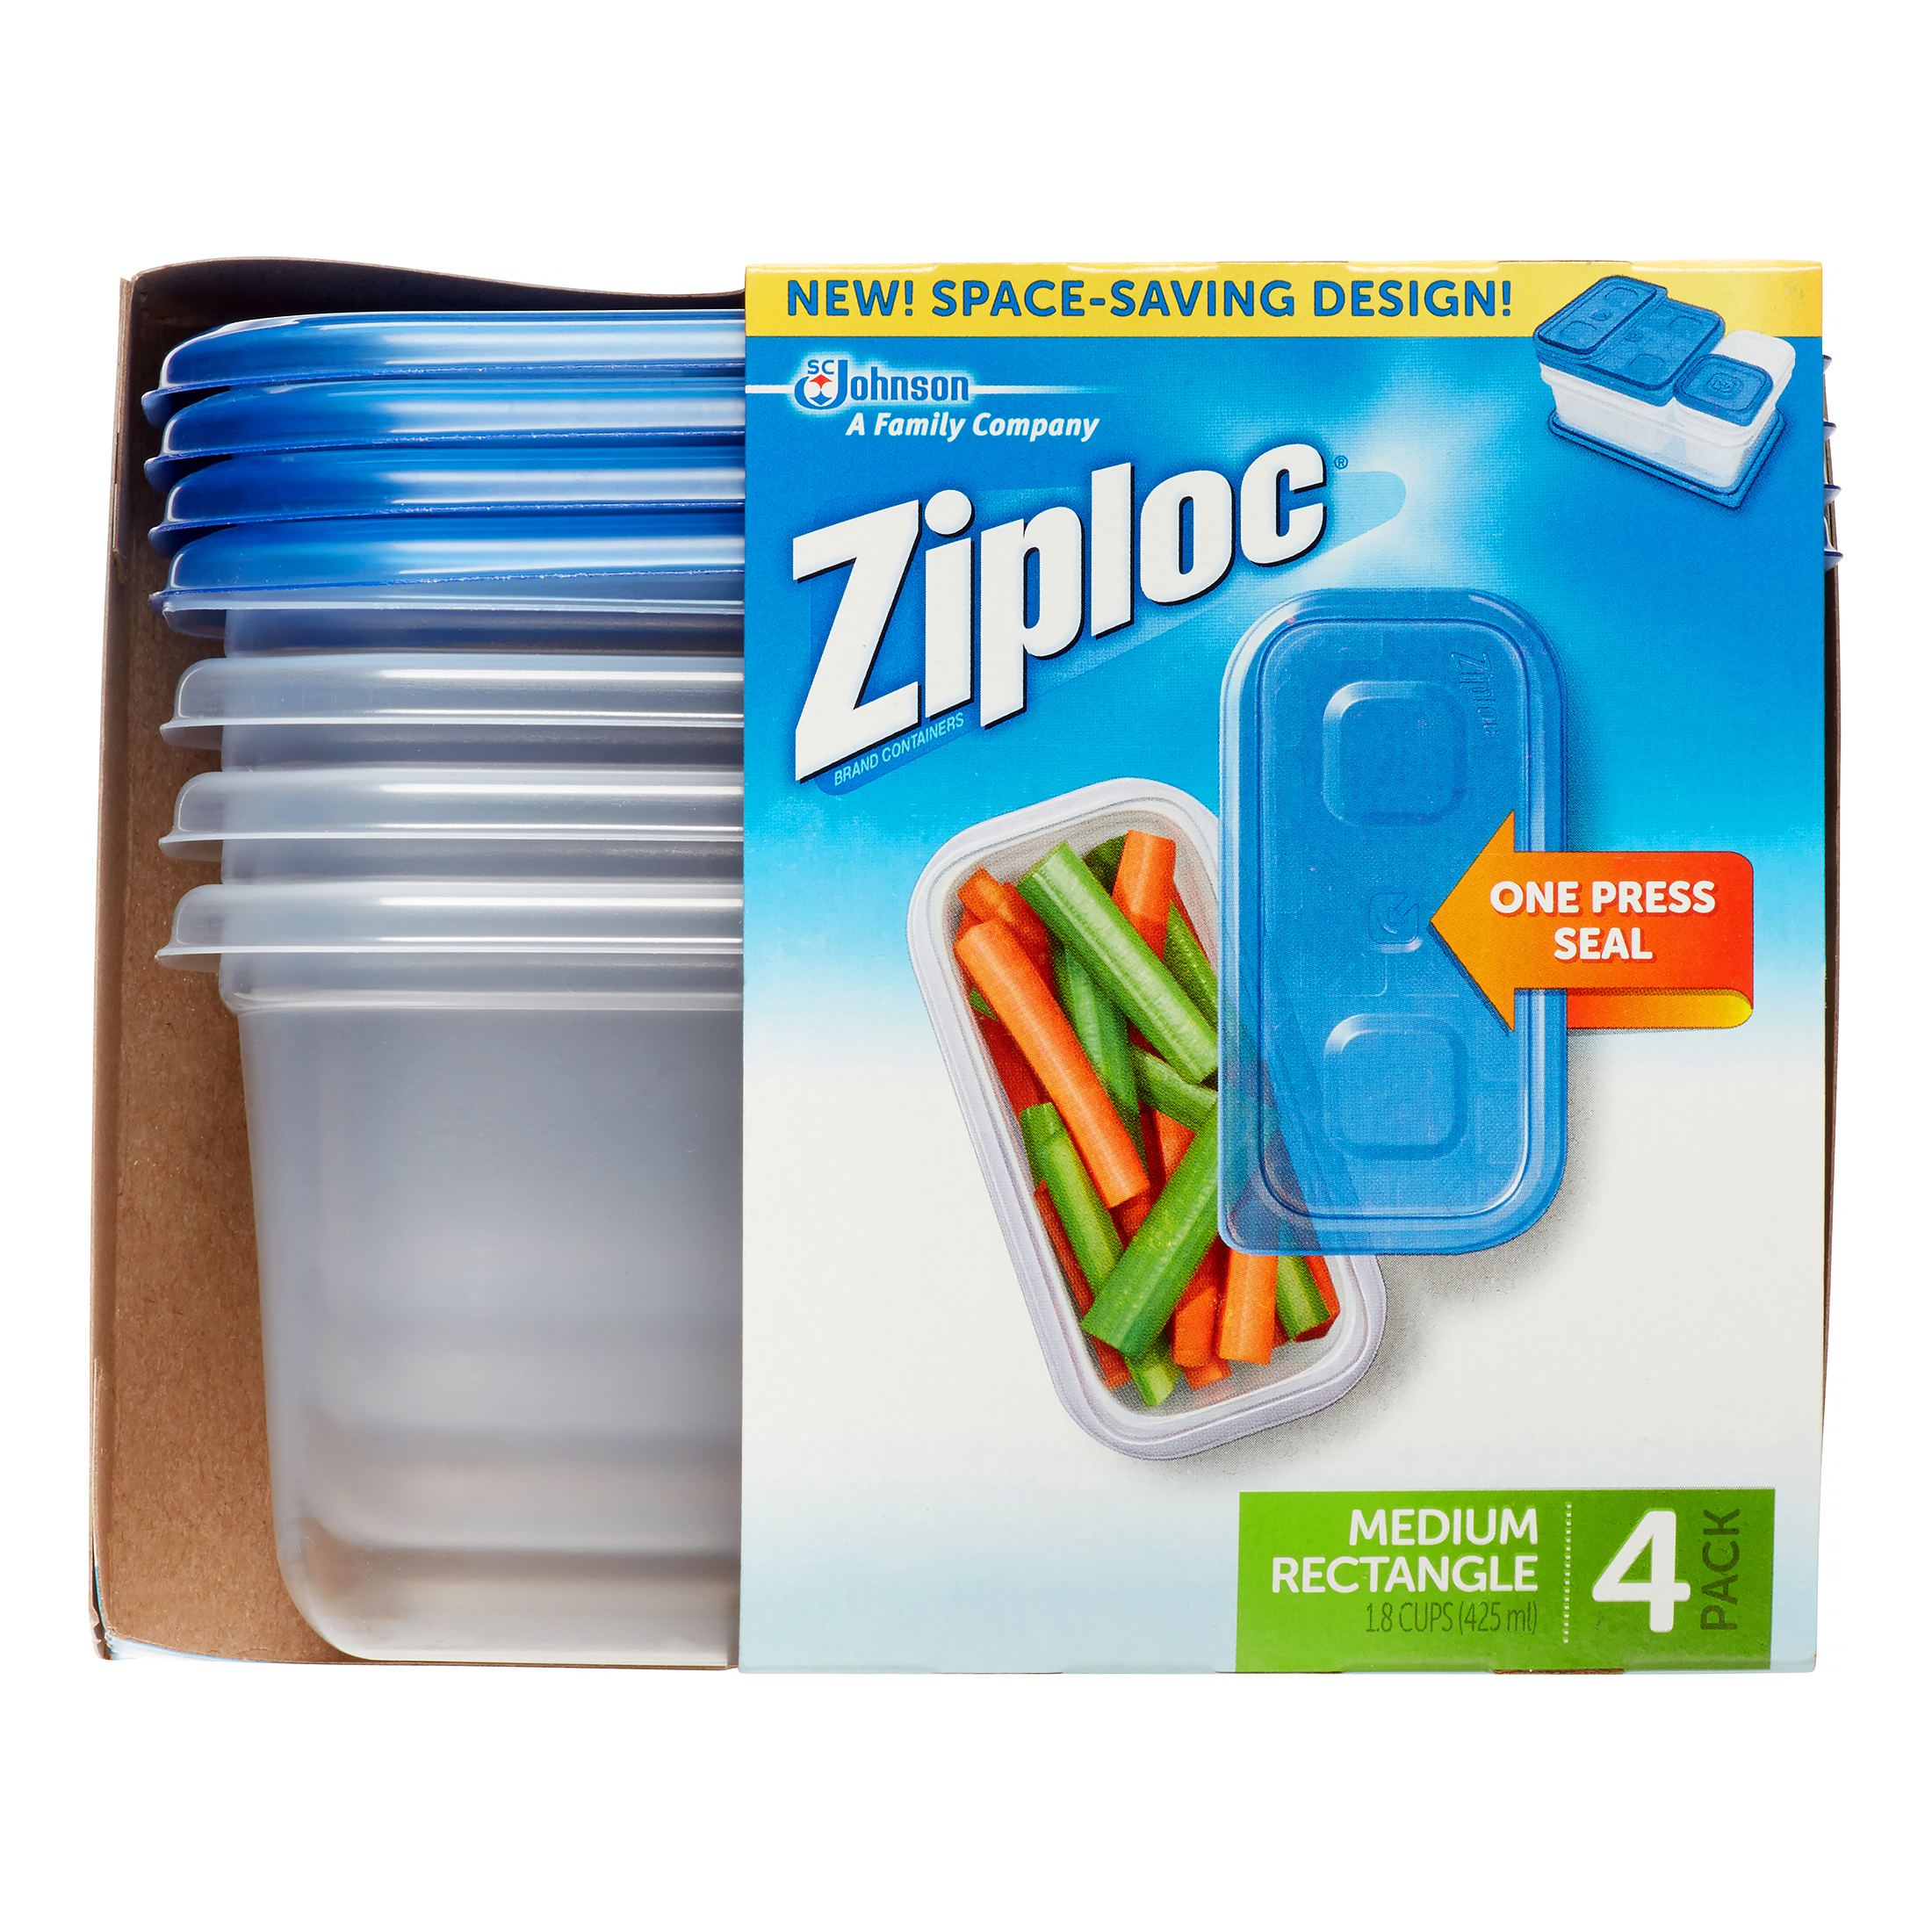 Ziploc brand container with One Press Seal, Medium Rectangle, 4 count